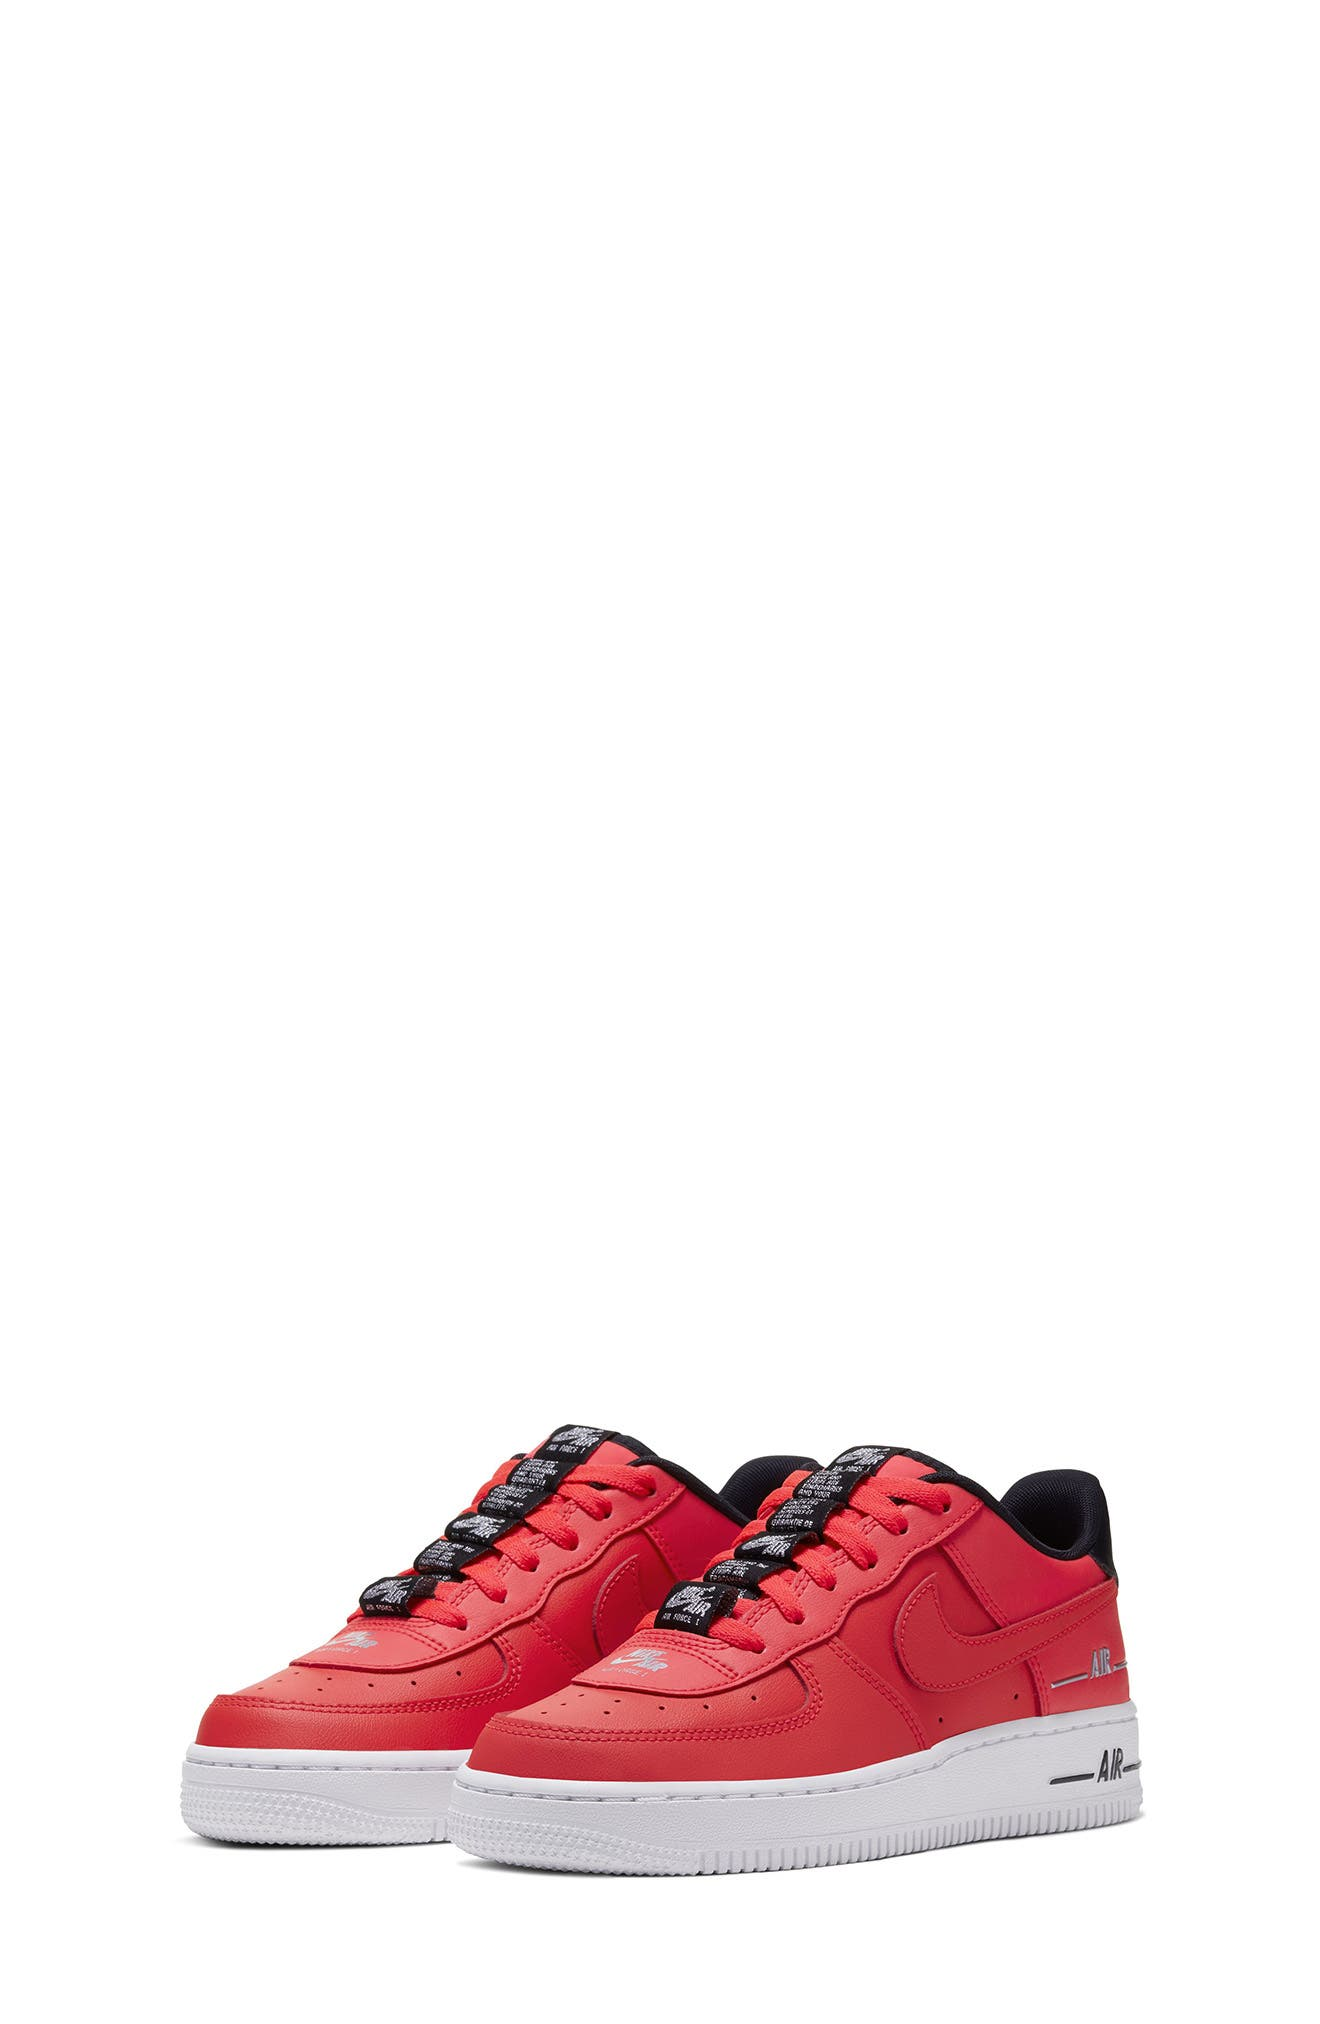 Girls' Red Sneakers, Tennis Shoes